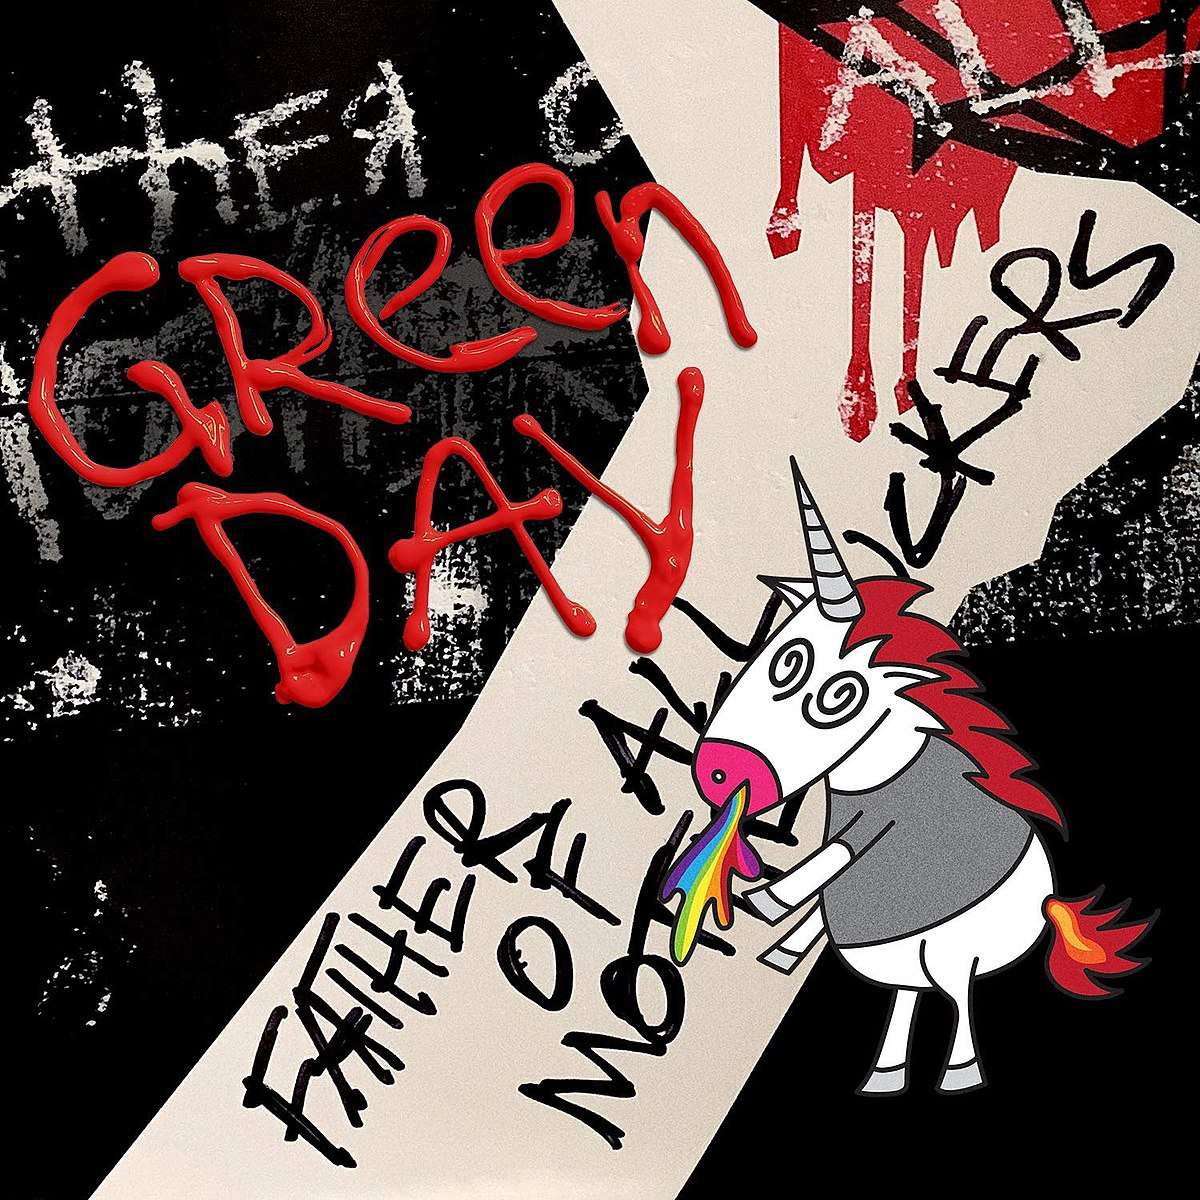 Green Day - Father of All Motherfuckers (2020)